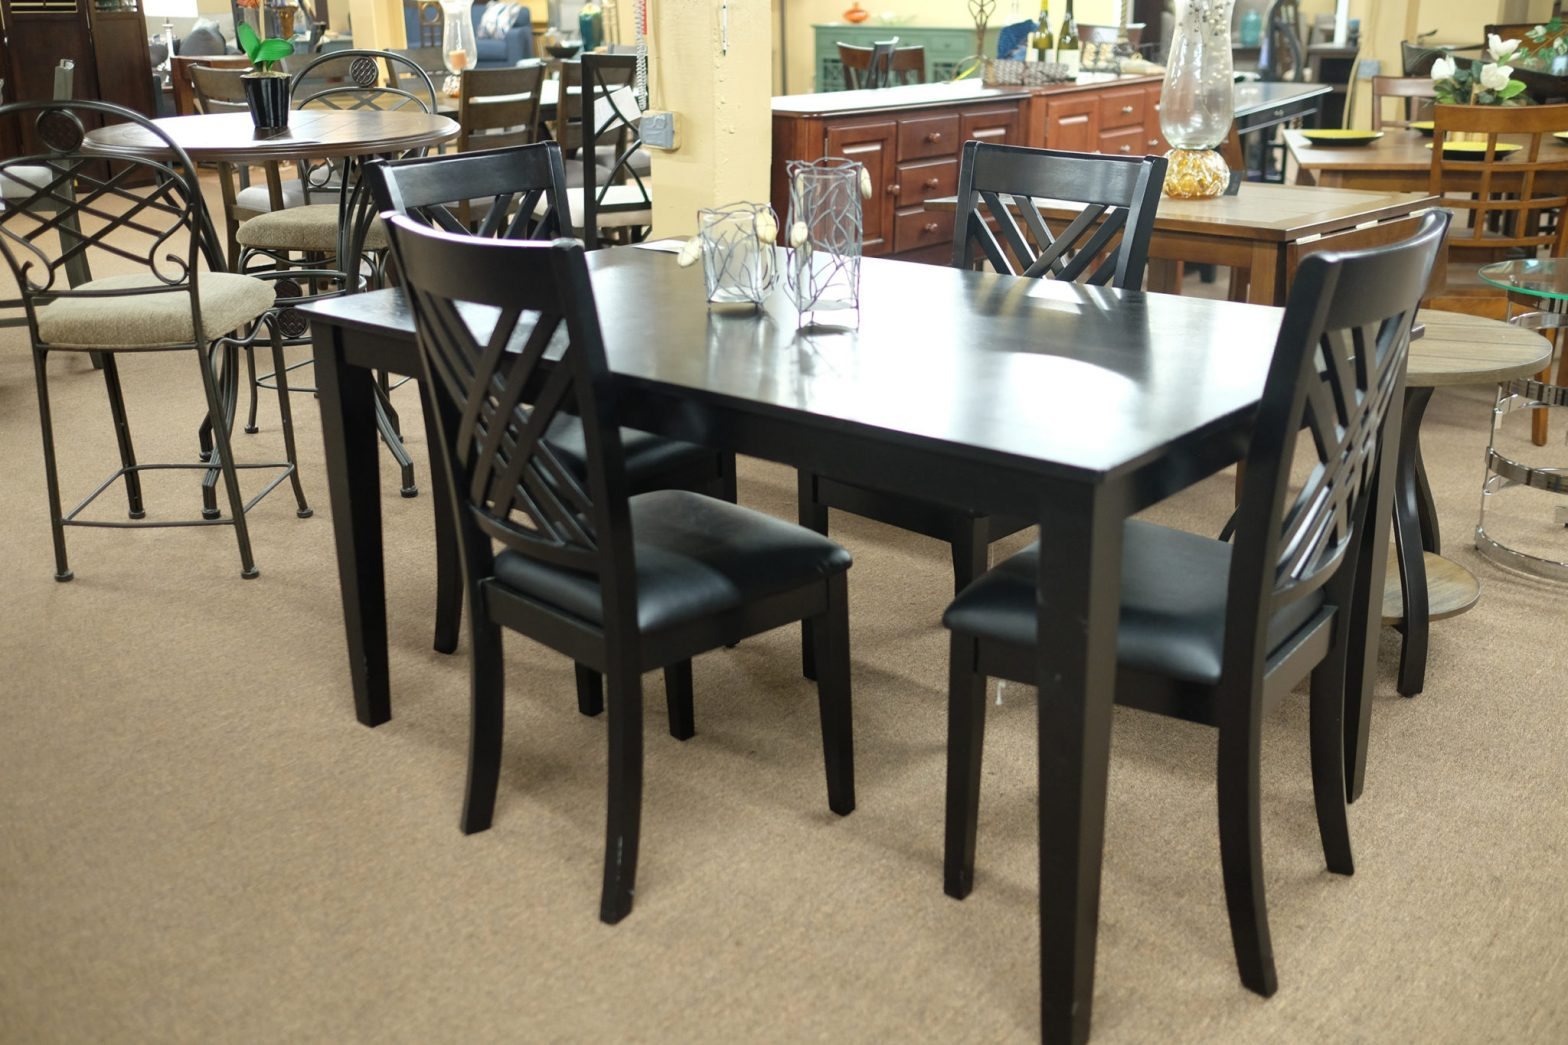 dining room furniture pittsburgh | Standard Brooklyn Dinette | Pittsburgh Furniture Leasing